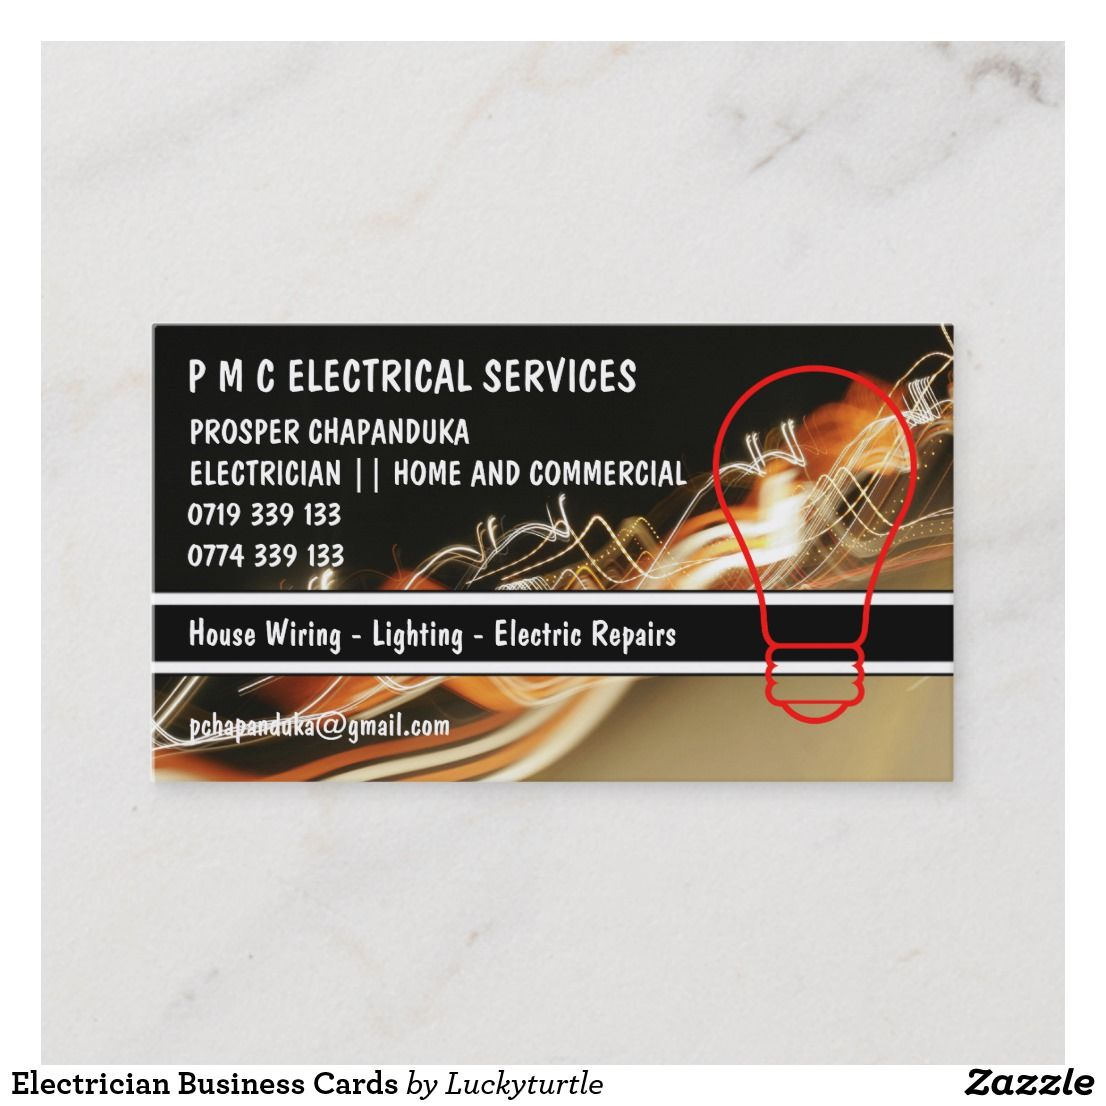 Electrician Business Cards Zazzle Com In 2020 Lawn Care Business Cards Personal Business Cards Electrician